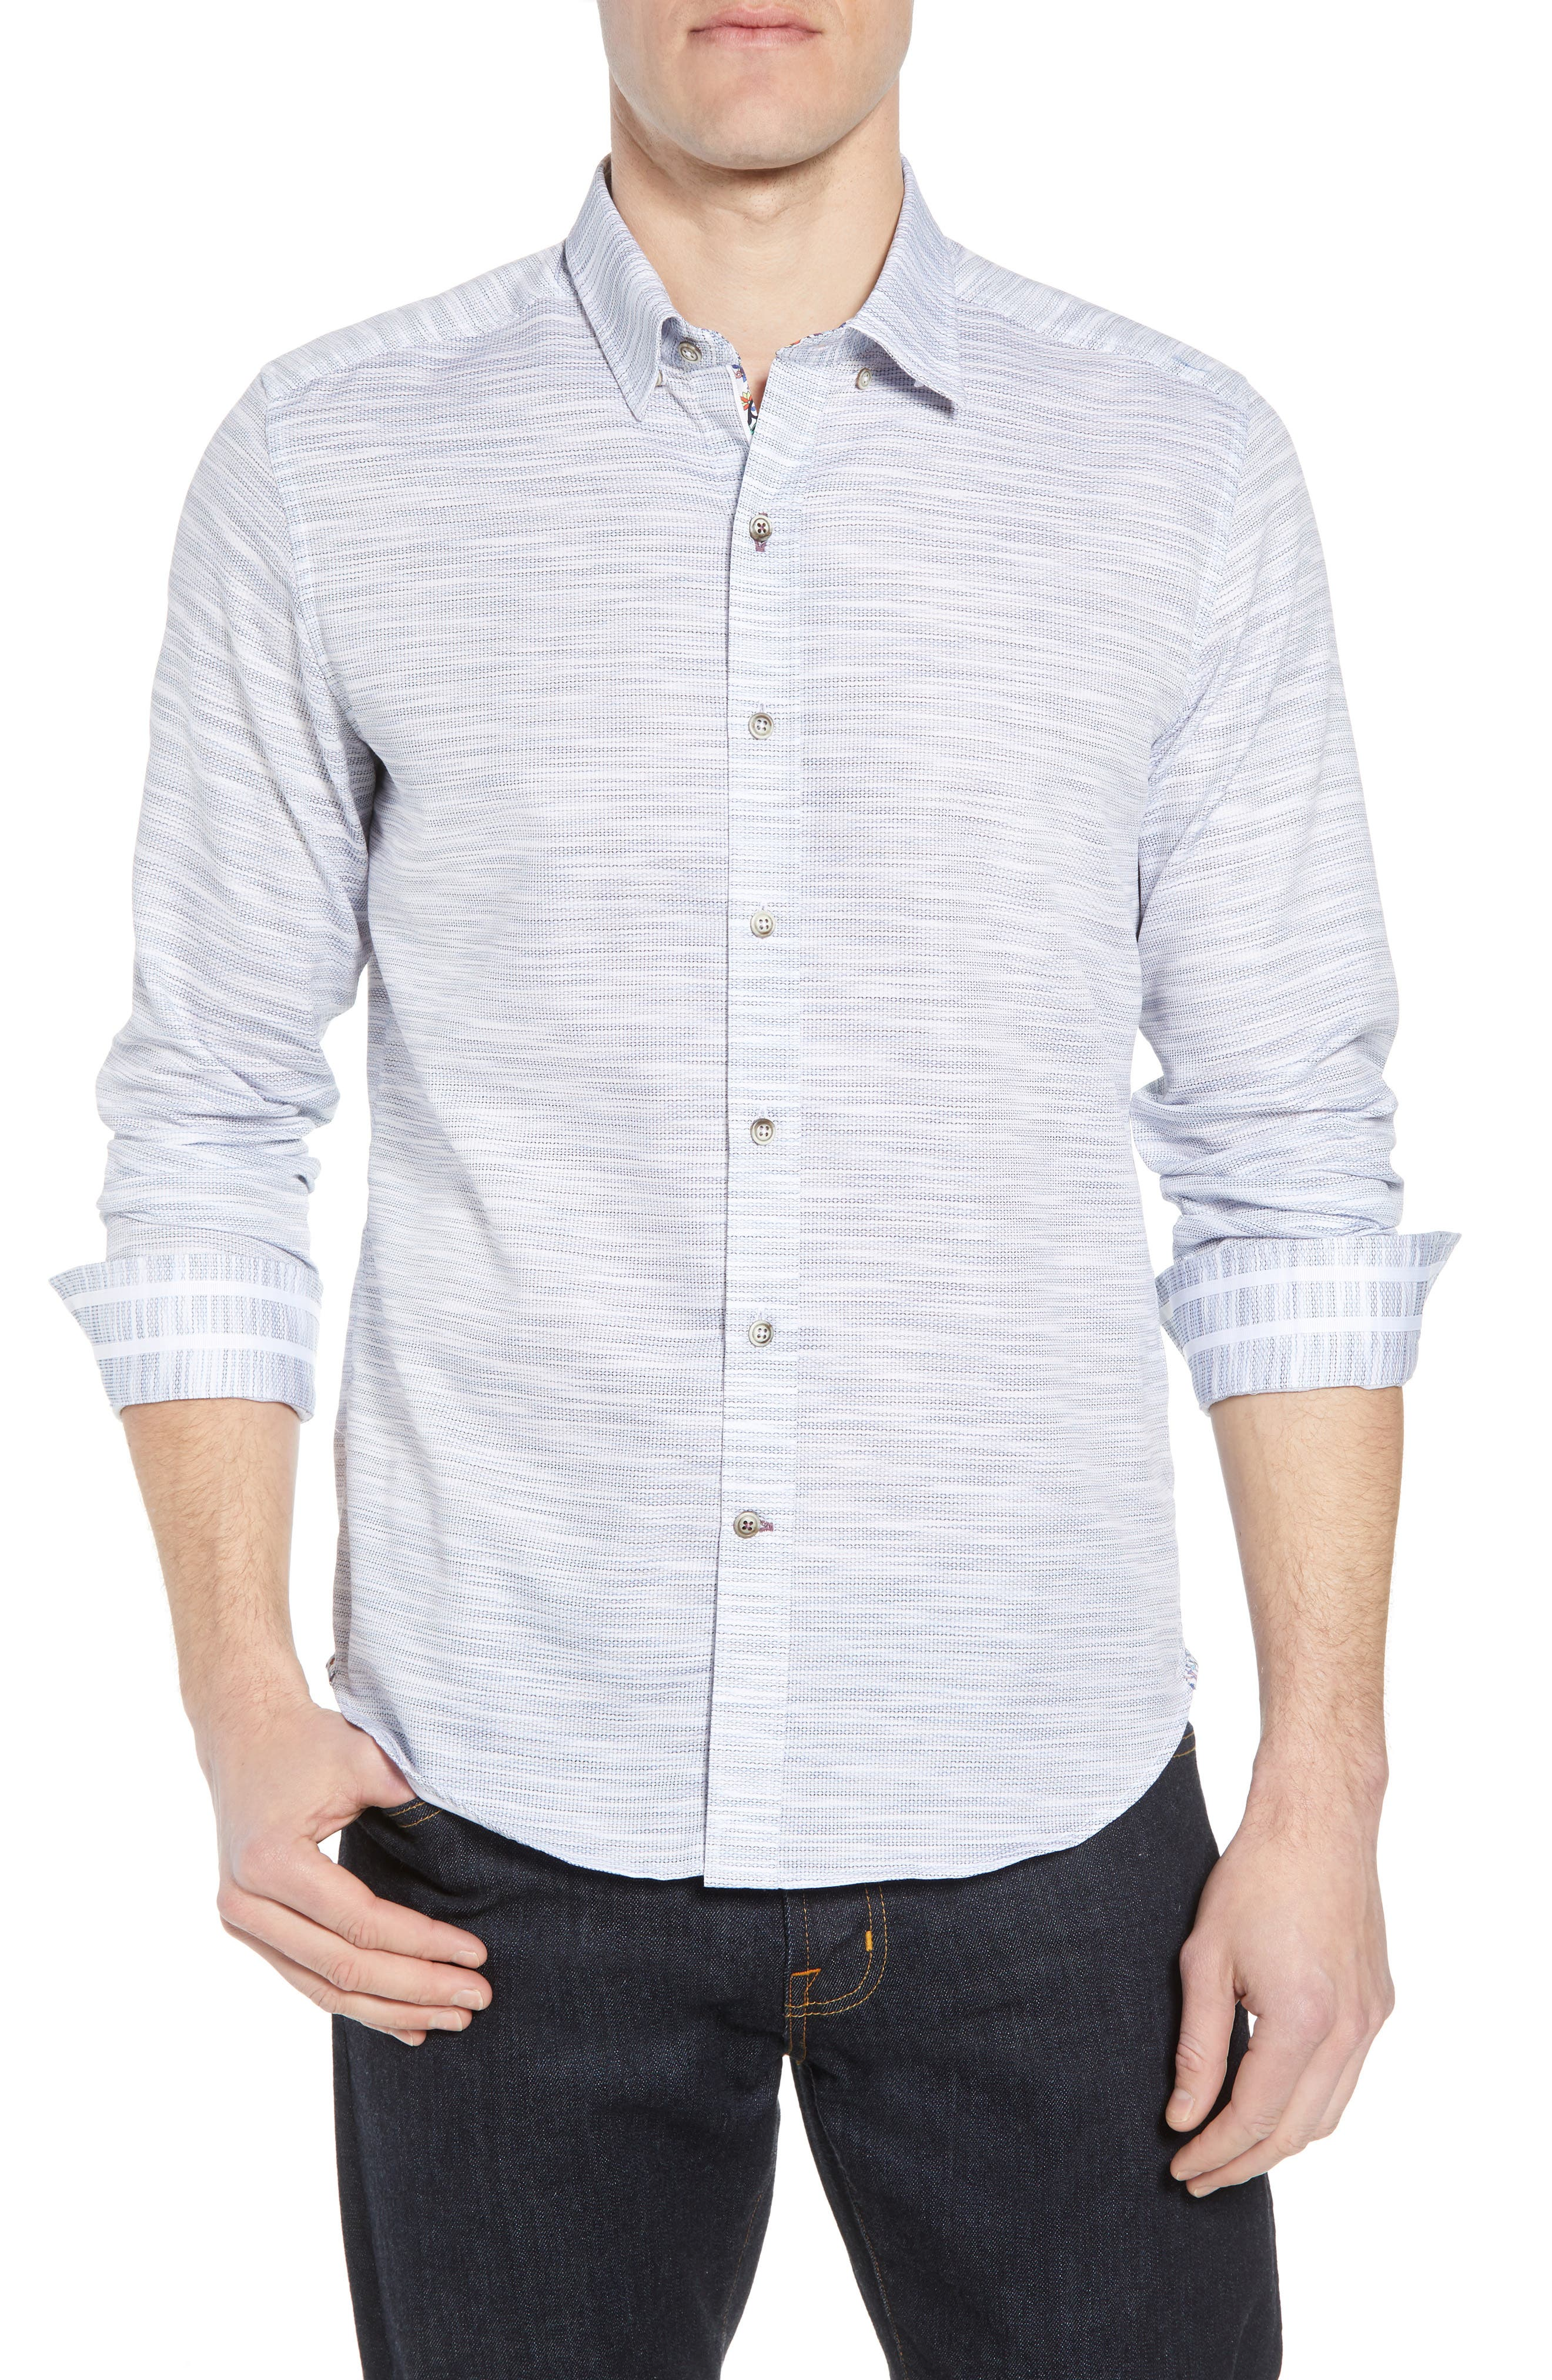 Tully Tailored Fit Sport Shirt,                             Main thumbnail 1, color,                             100